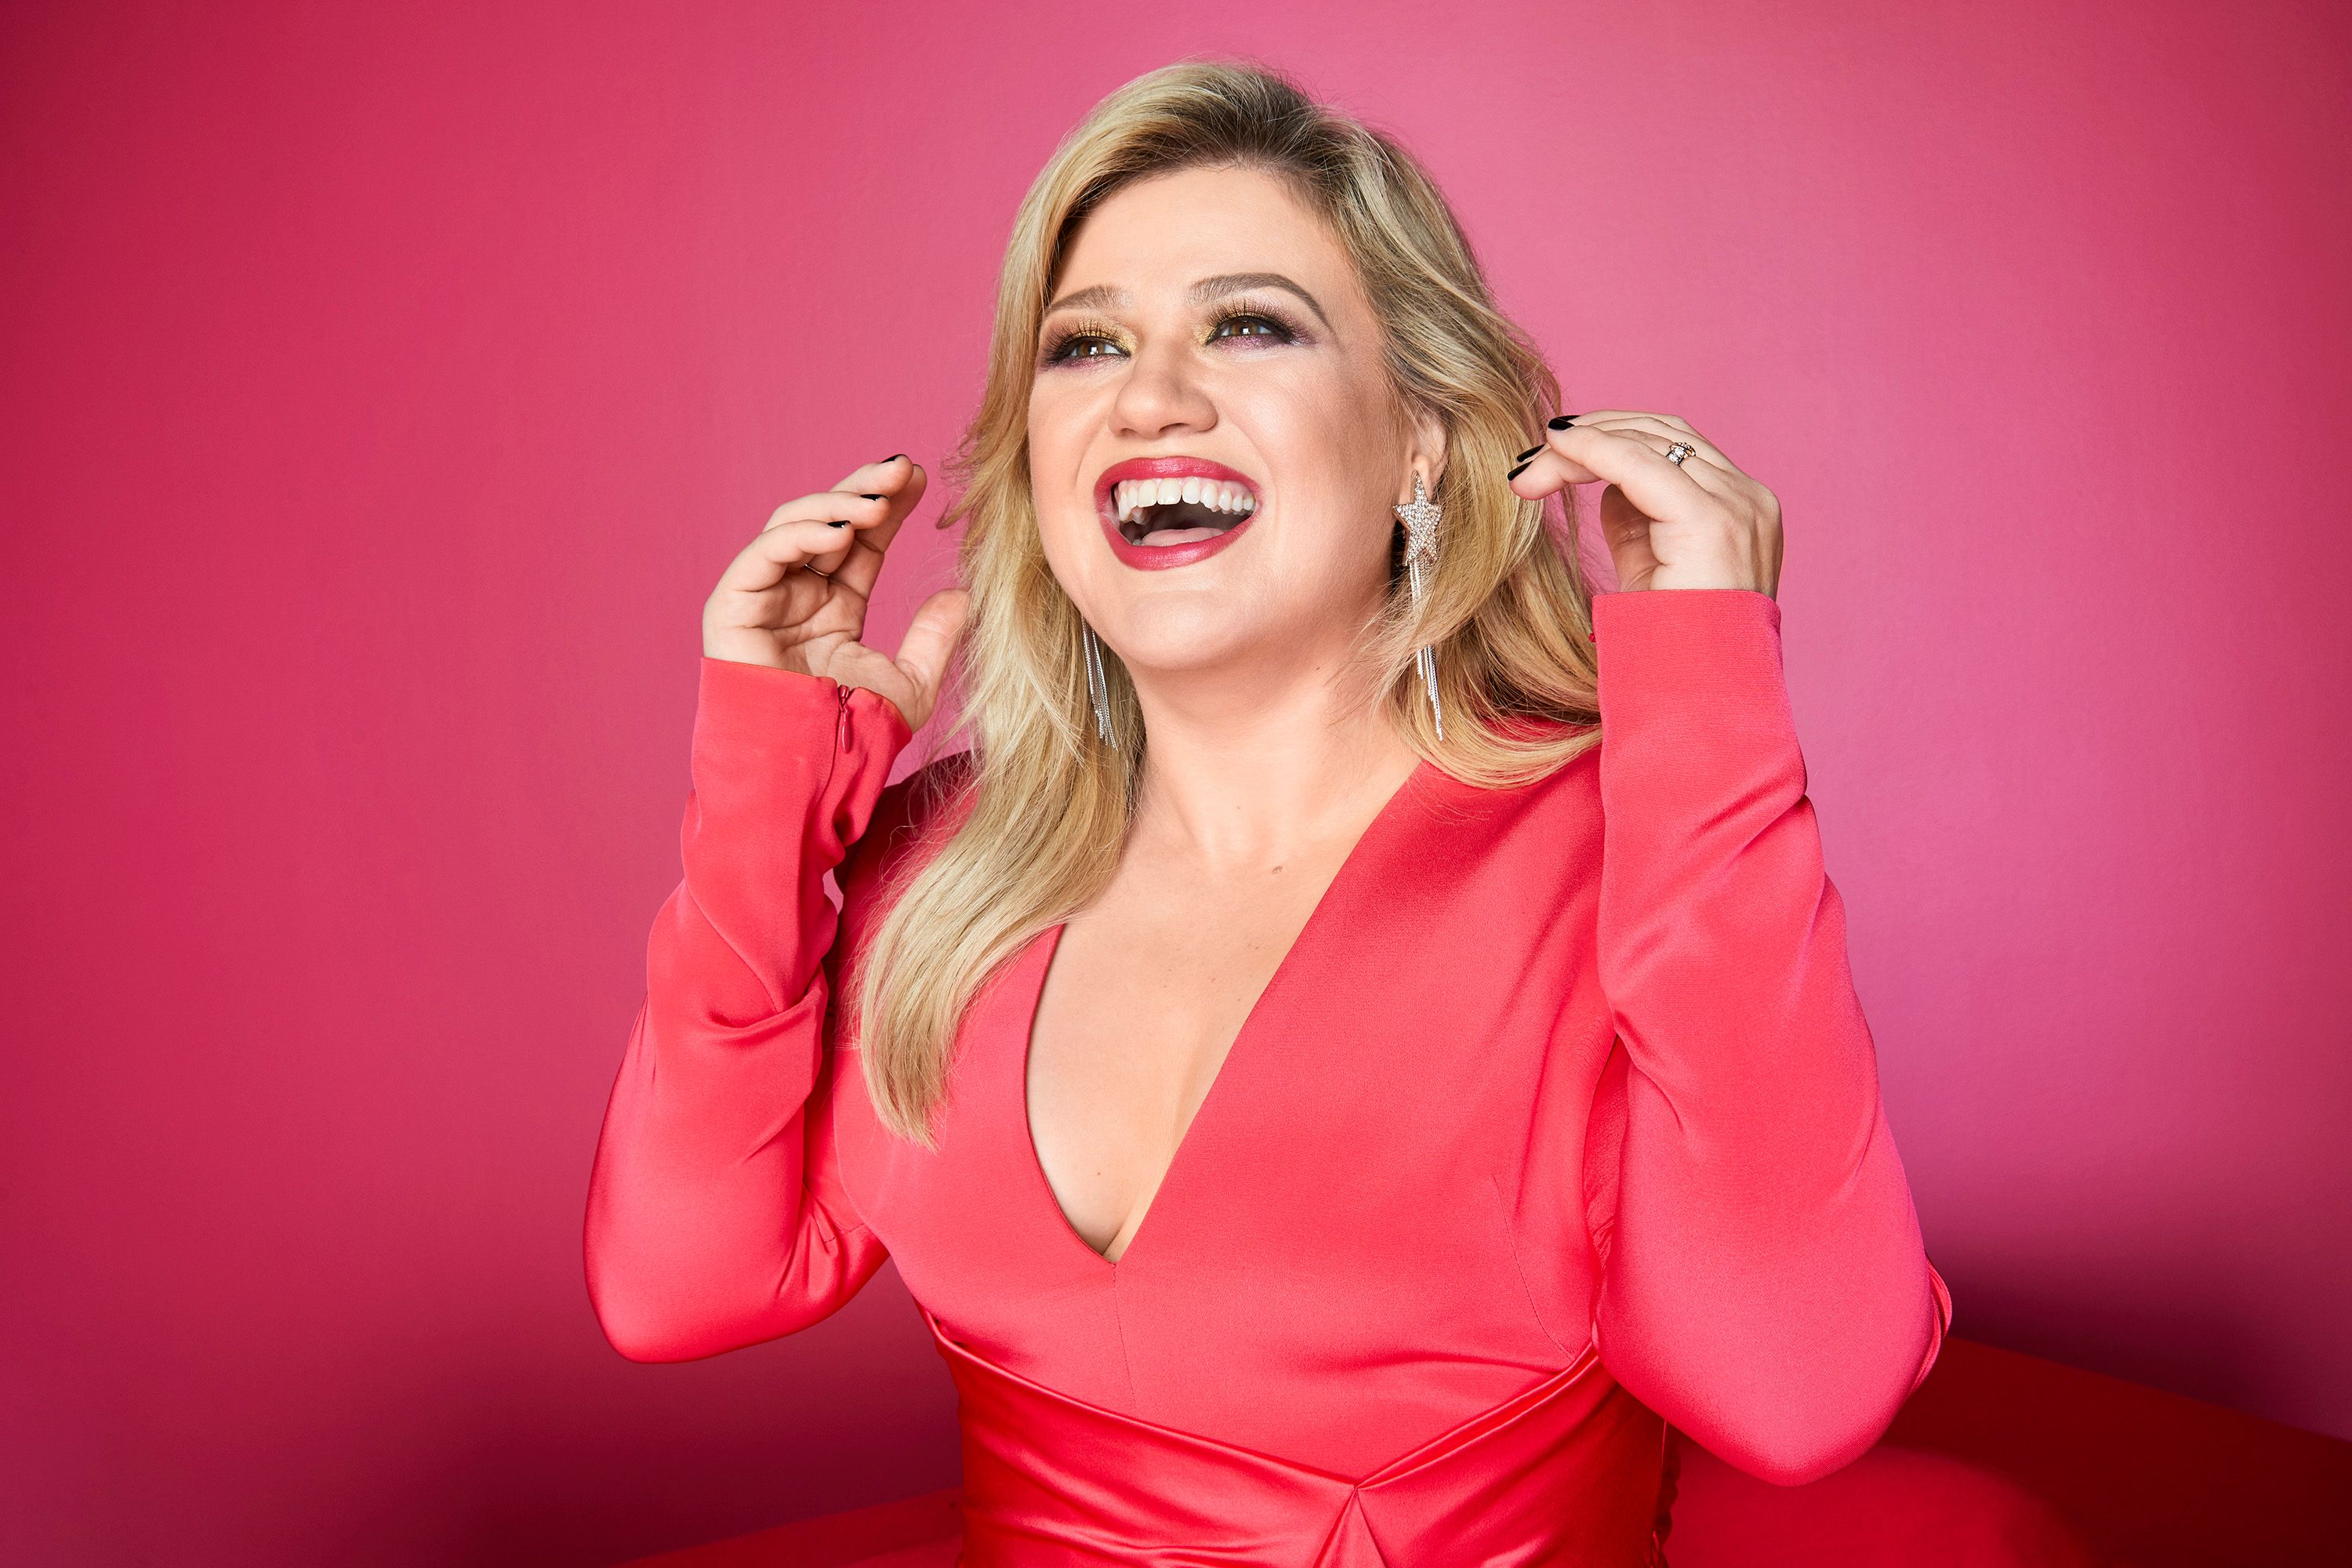 Kelly Clarkson fights back against body shaming